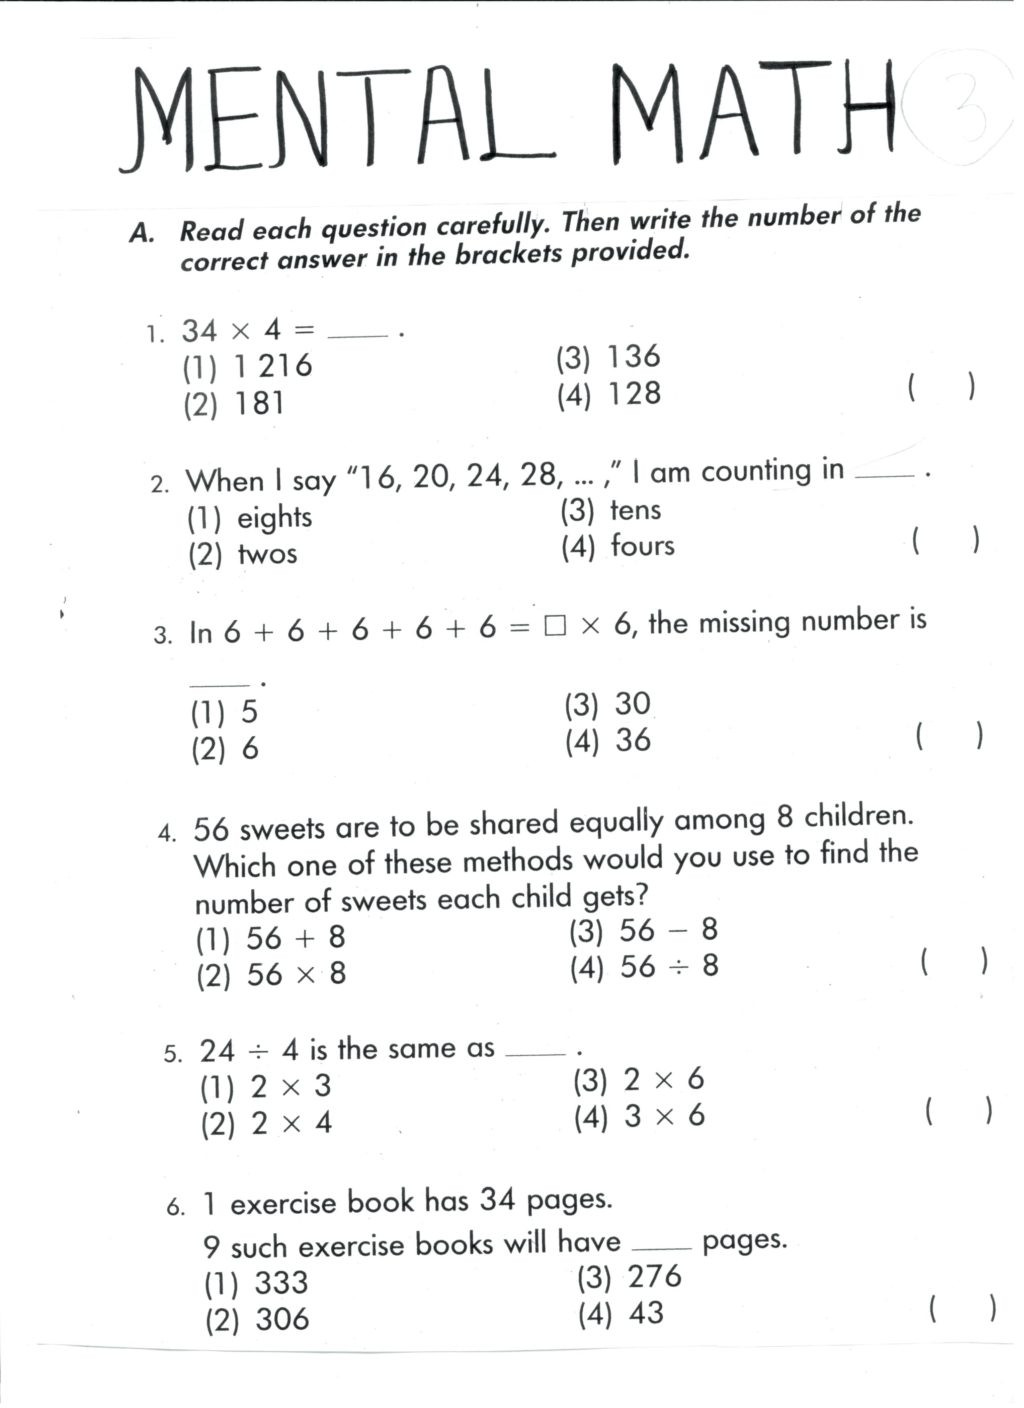 Mental Math Multiplication Worksheets Worksheet Marvelous Mental Math Worksheets Grade